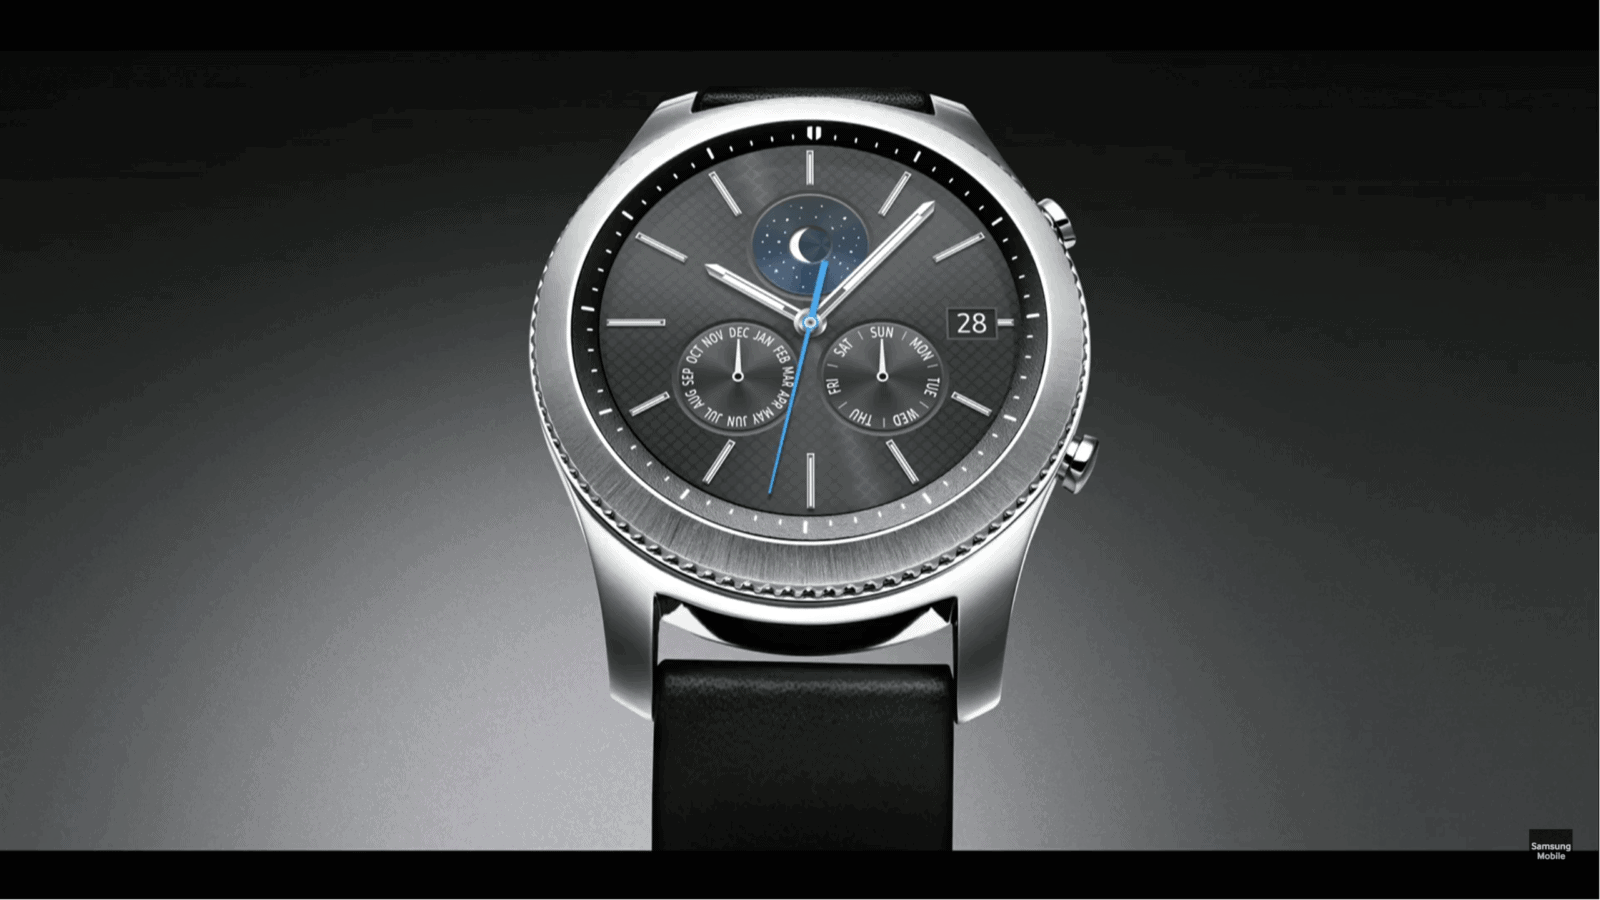 samsung 39 s gear s3 classic goes on sale in october for 299. Black Bedroom Furniture Sets. Home Design Ideas